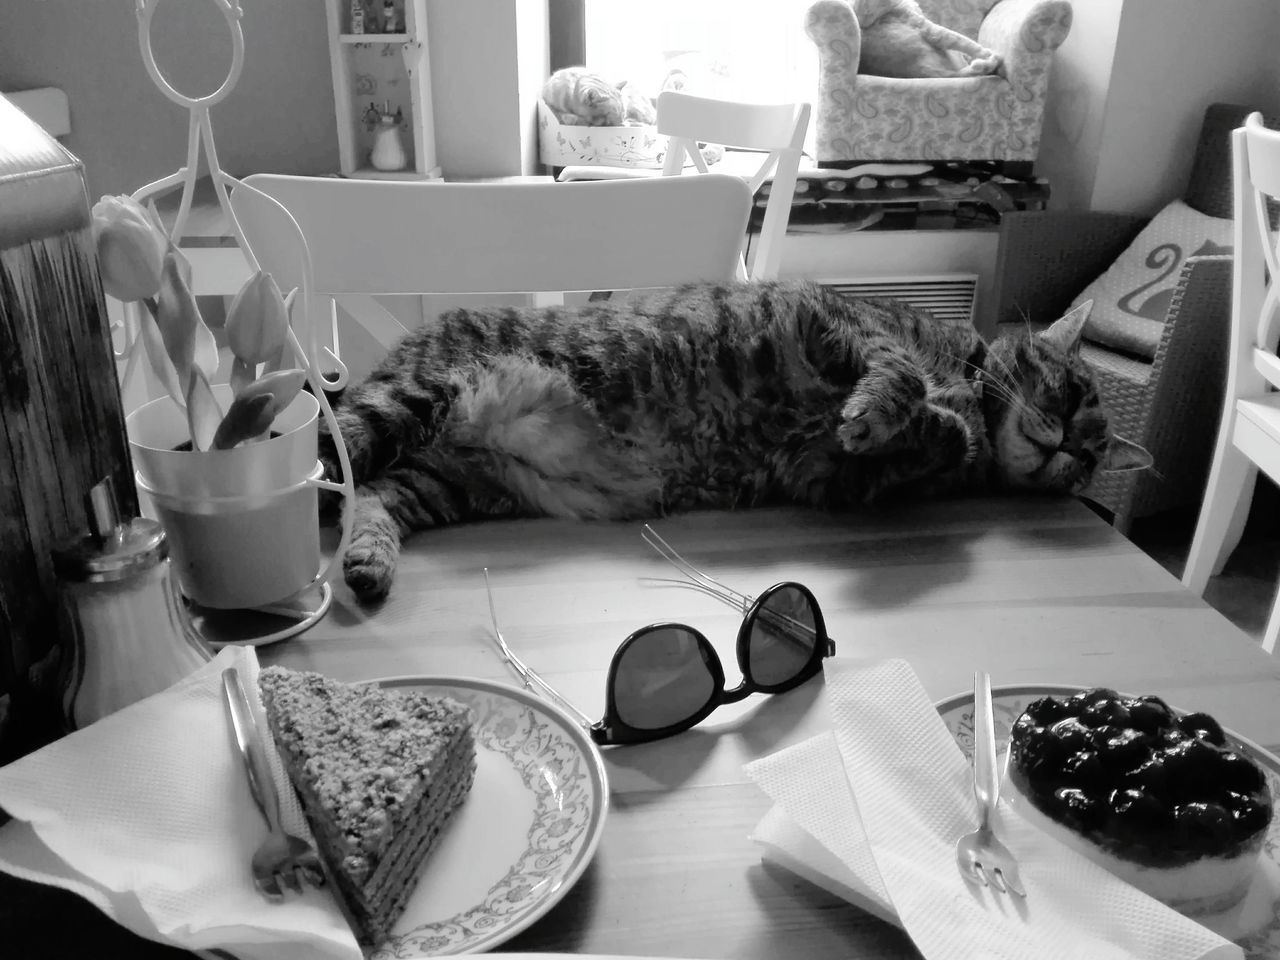 table, pets, cat, domestic cat, feline, domestic, indoors, domestic animals, animal, no people, mammal, vertebrate, animal themes, one animal, food and drink, home interior, food, drink, furniture, cup, breakfast